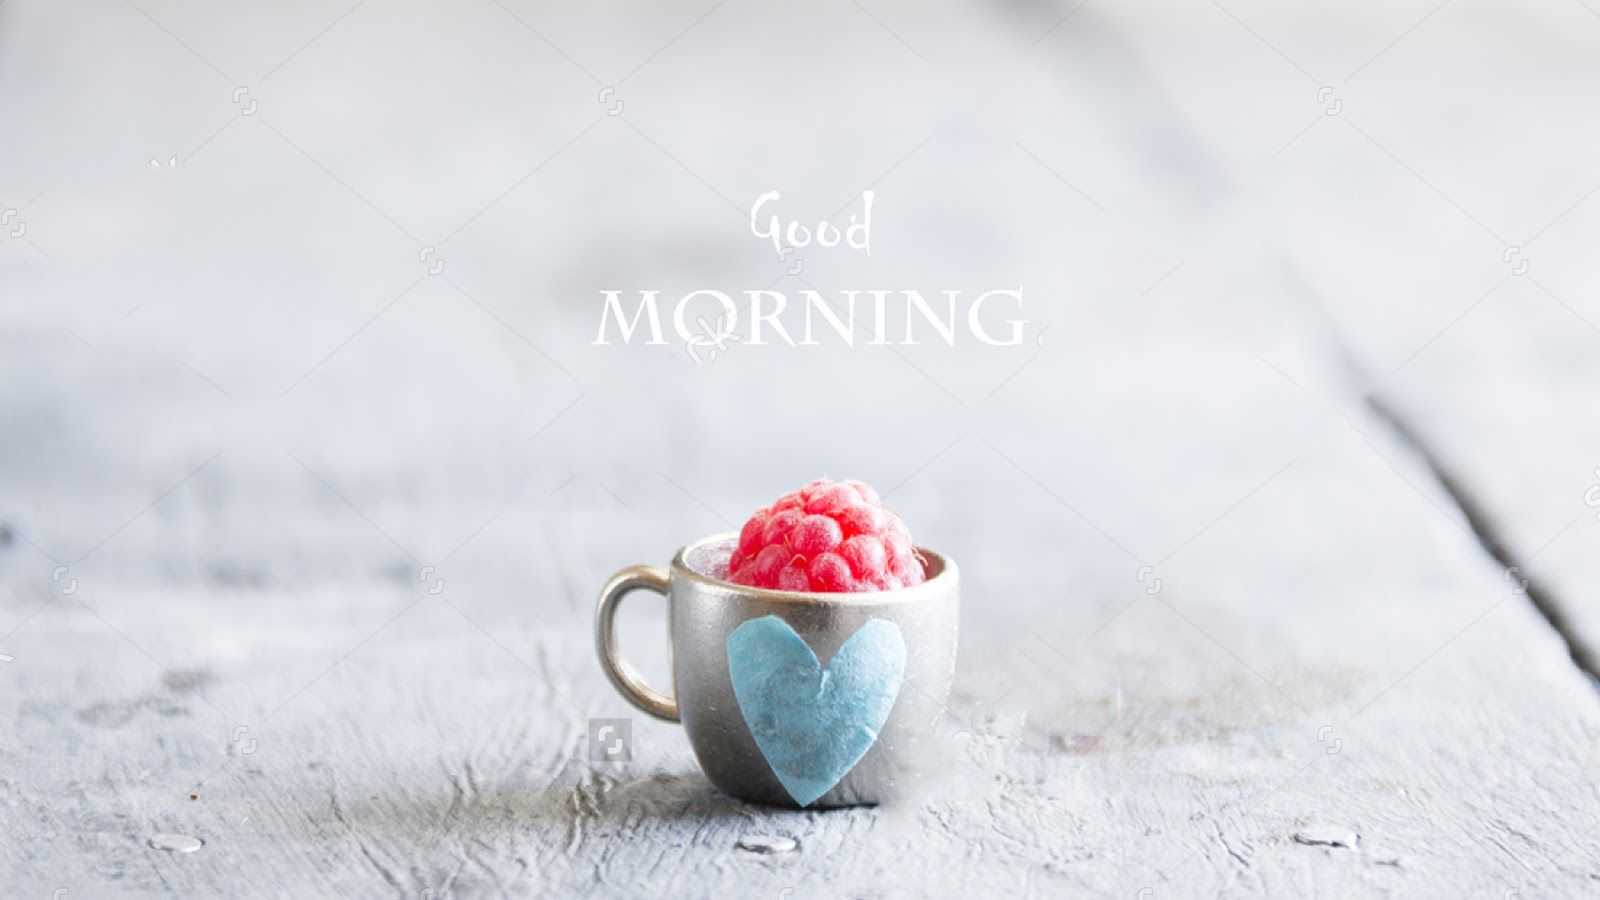 Good Morning Wallpapers Hd Download Free 1080p Good Morning Wallpaper Good Morning Apple Wallpaper Iphone Good morning hd wallpapers free download